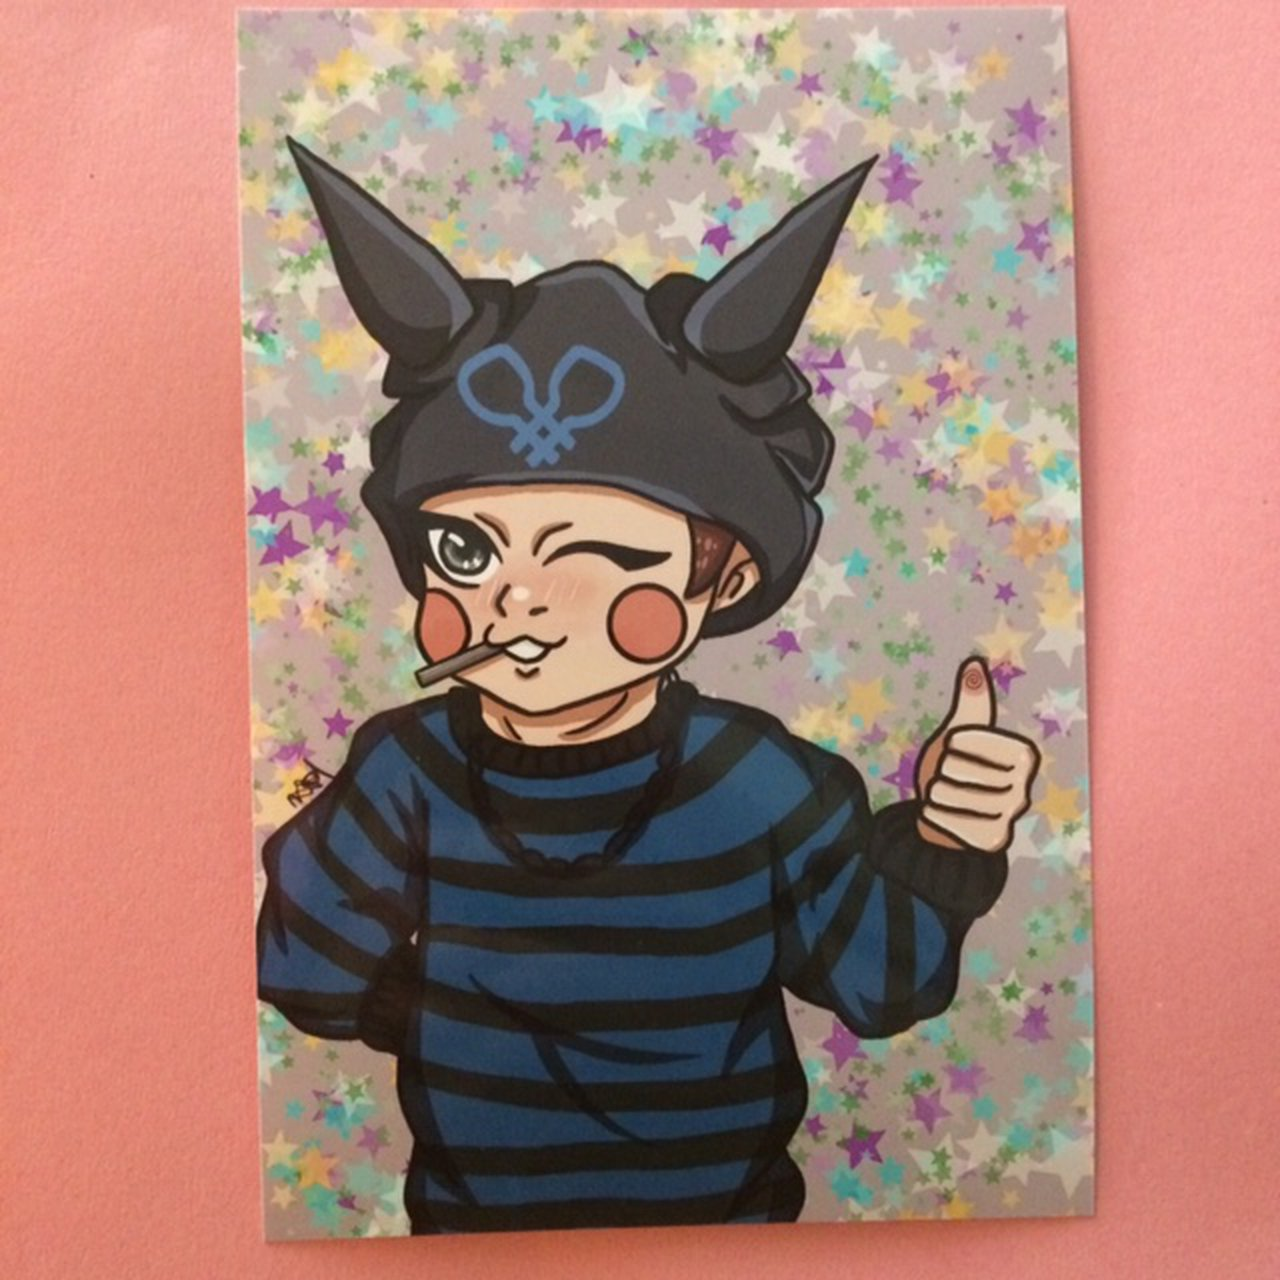 Ryoma Hoshi 6x4 Digital Print Danganronpa V3 Depop This is just something i wanted to make. ryoma hoshi 6x4 digital print